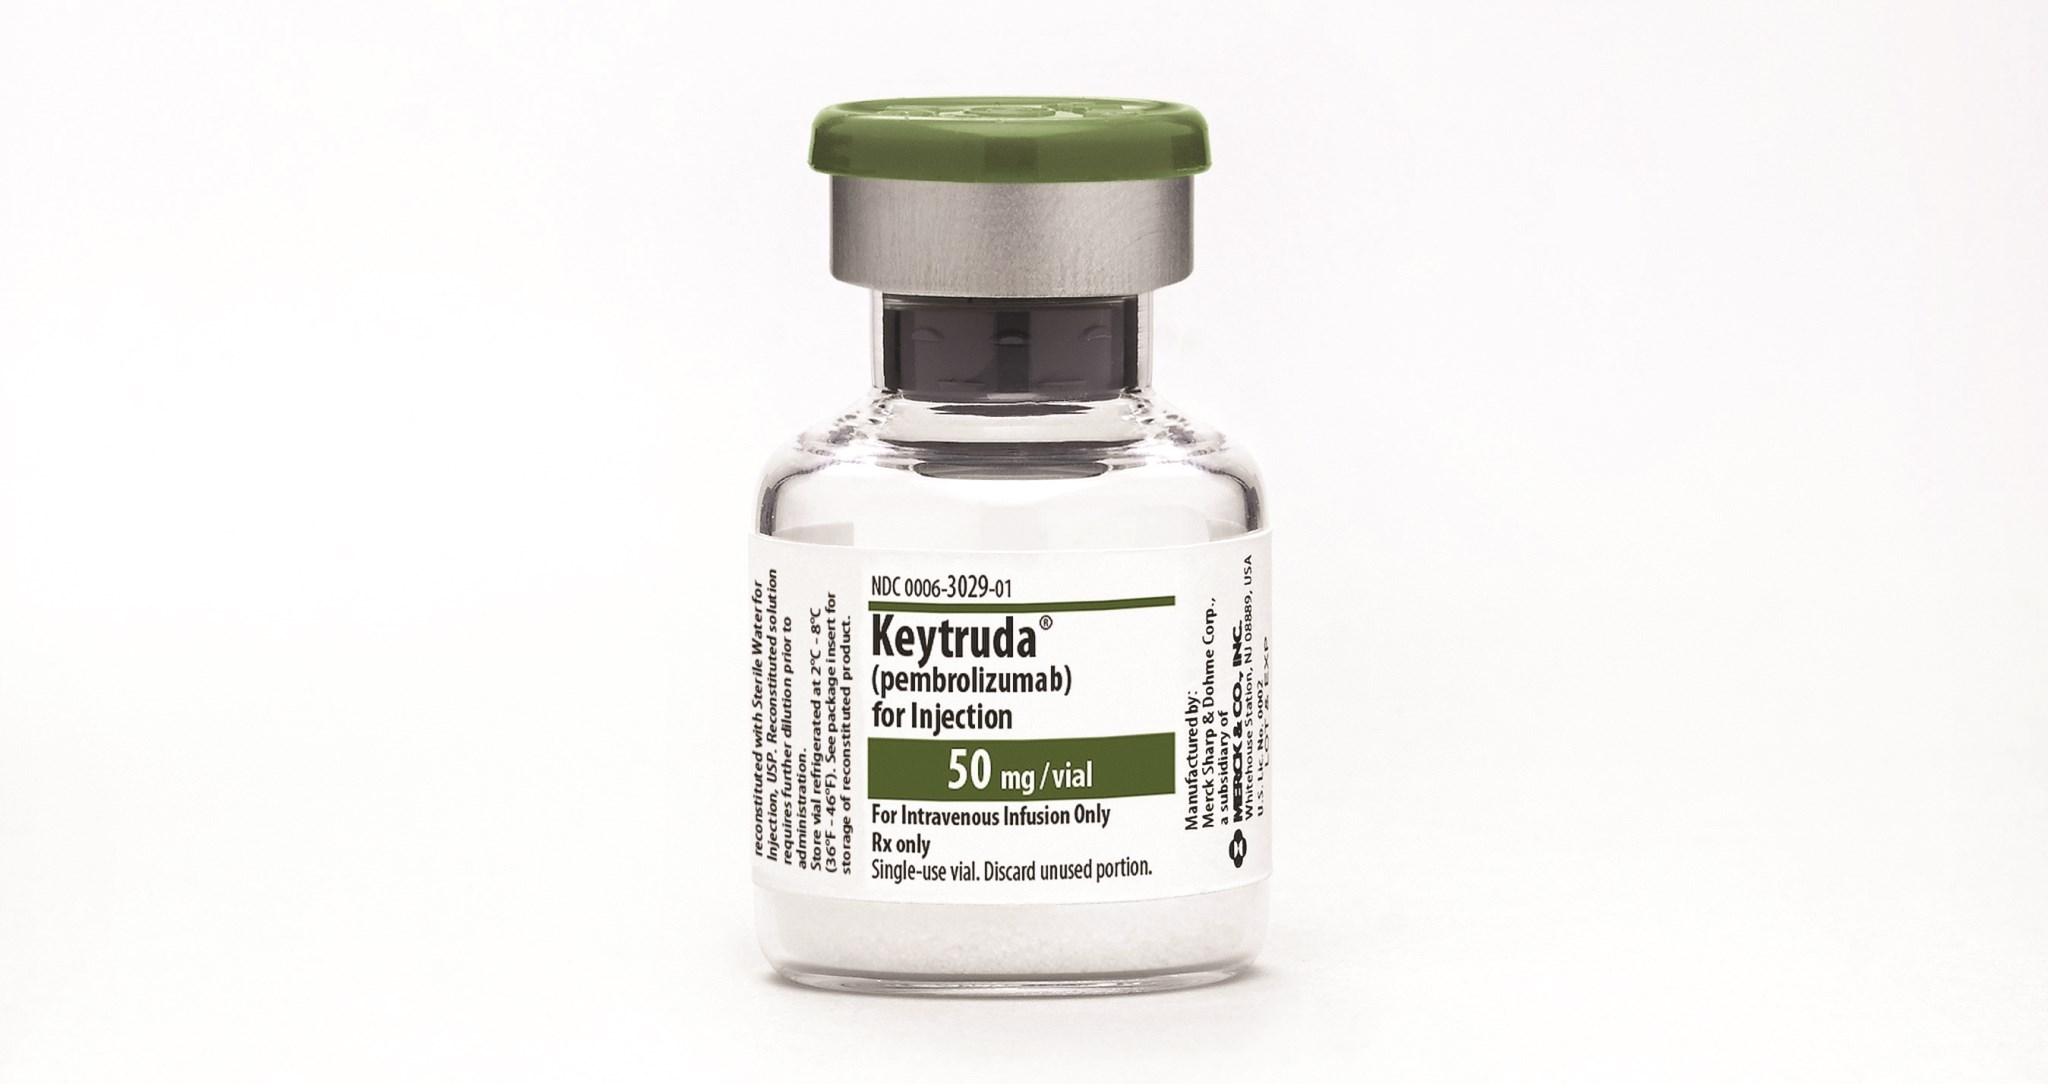 Merck's Keytruda wins approval in first-line lung cancer